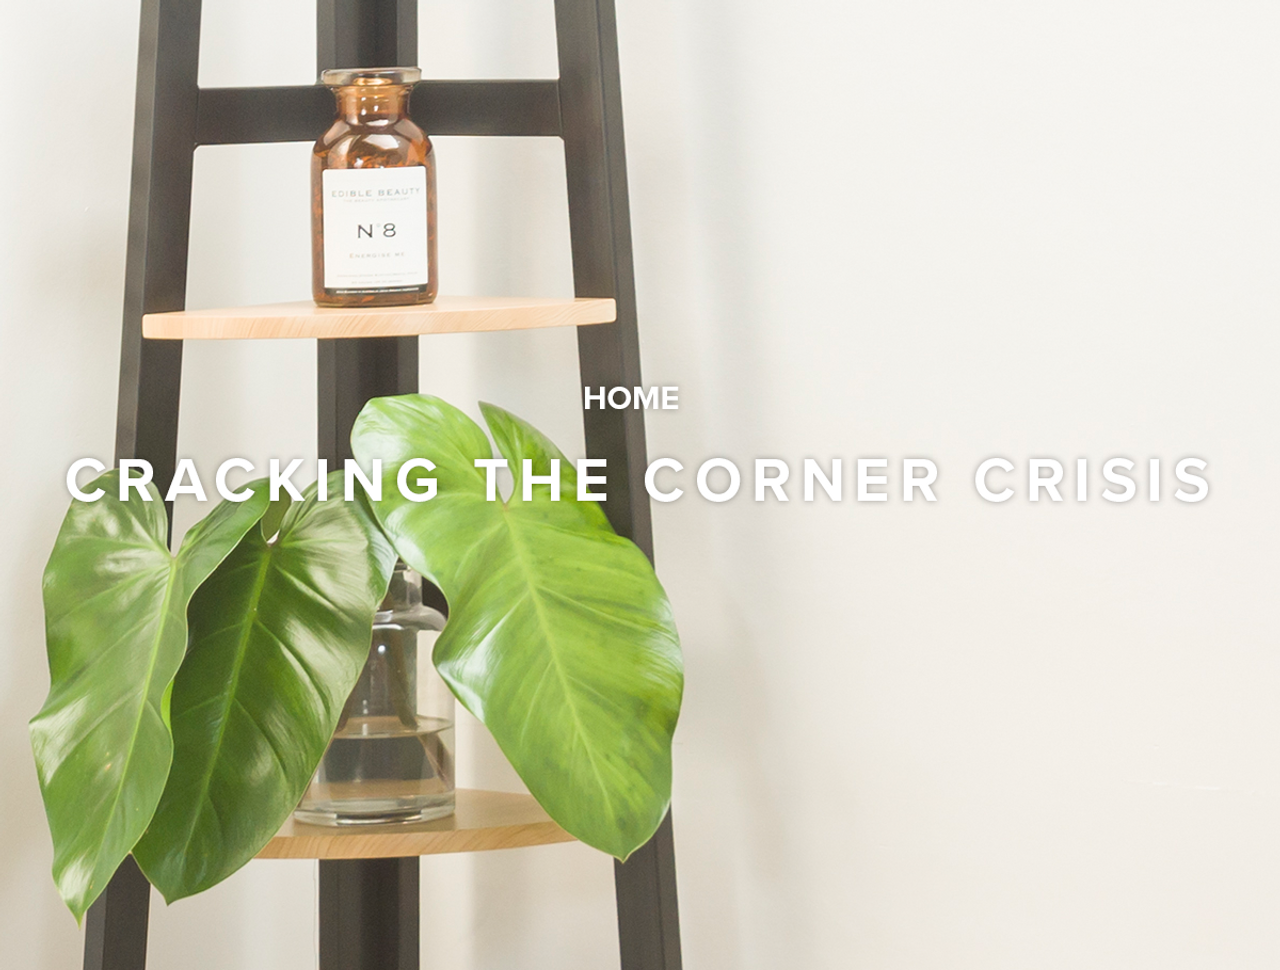 Cracking the Corner Crisis